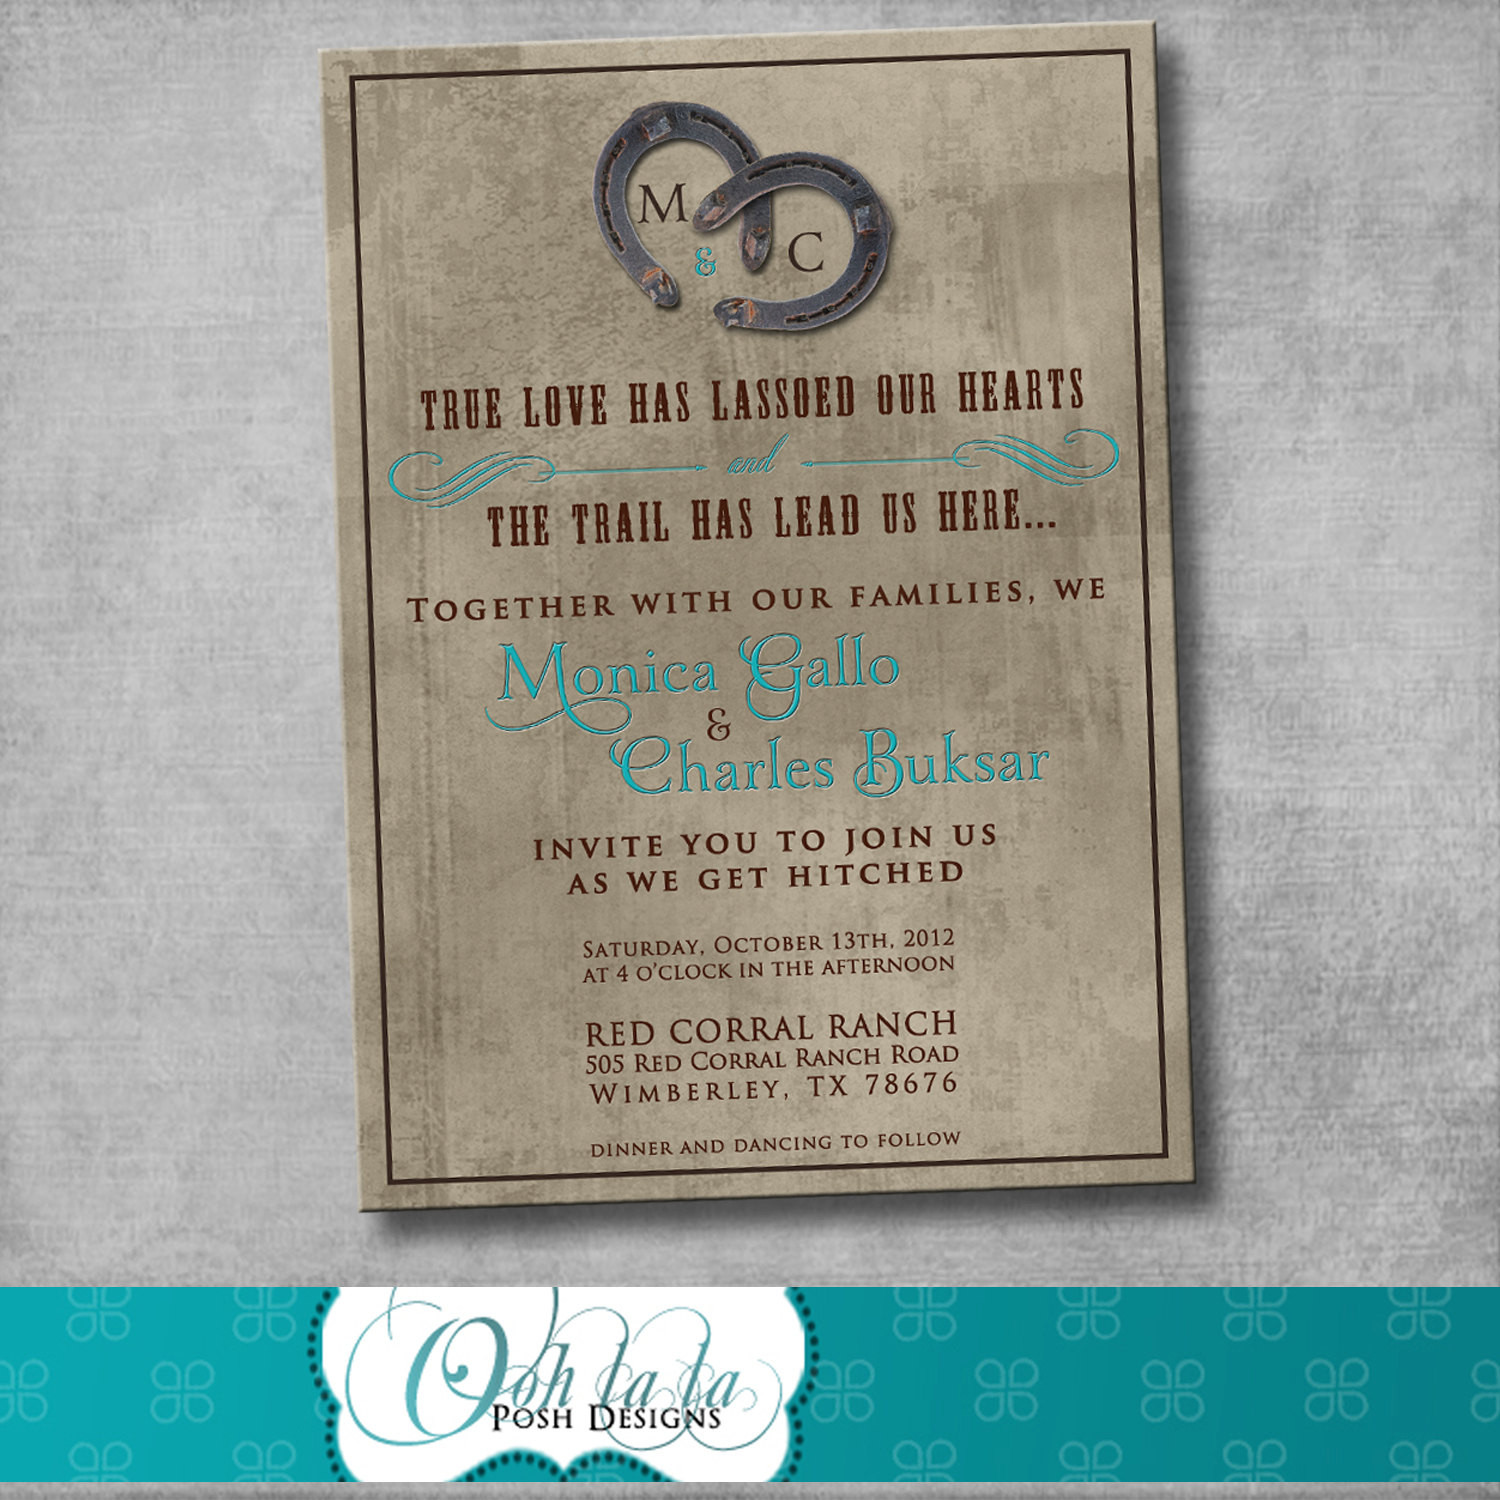 Best ideas about DIY Rustic Wedding Invitations . Save or Pin Rustic Charm Wedding Invitation DIY by OohlalaPoshDesigns Now.